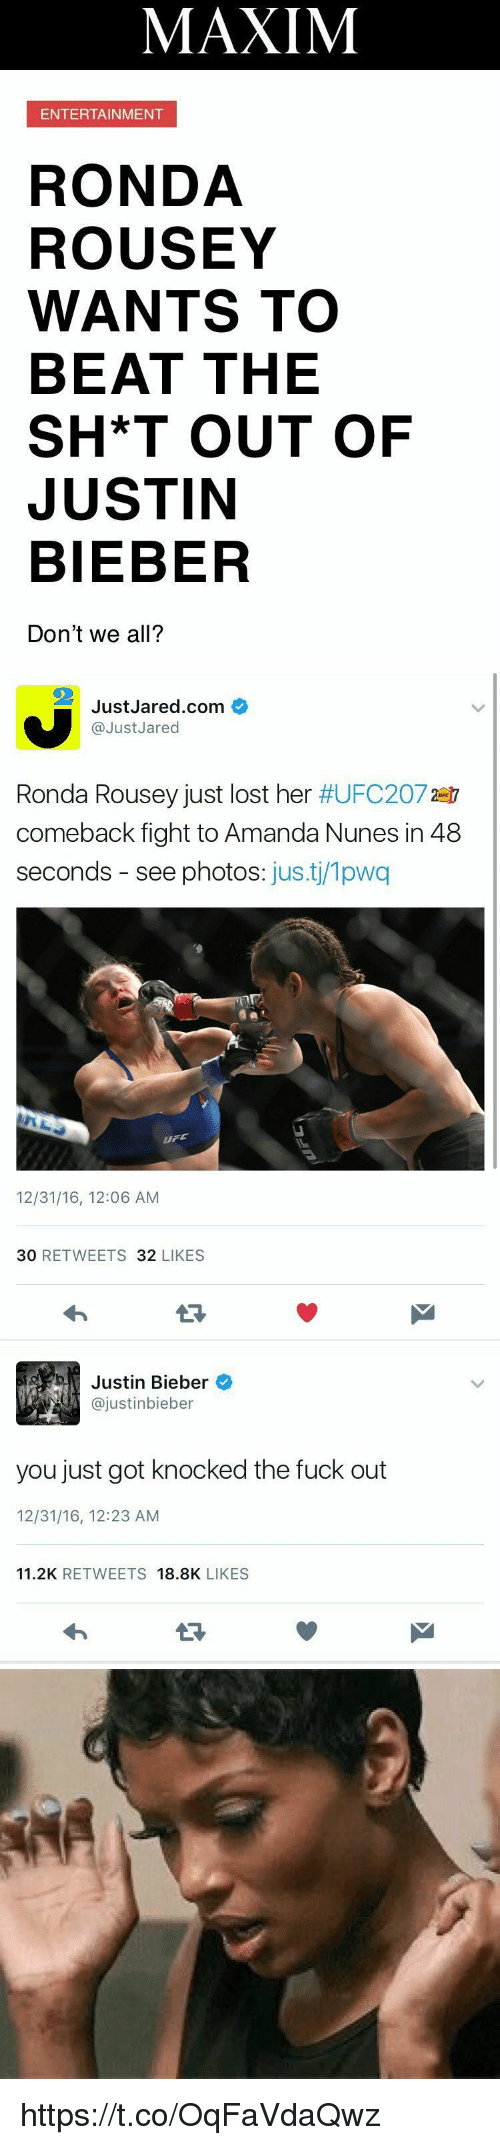 Amanda Nunes: MAXIM  ENTERTAINMENT  RONDA  ROUSEY  WANTS TO  BEAT THE  SH*T OUT OF  JUSTIN  BIEBER  Don't we all?   JustJared.com  @Just Jared  Ronda Rousey just lost her  #UFC2072er  comeback fight to Amanda Nunes in 48  seconds see photos  justi/1pwa  12/31/16, 12:06 AM  30 RET WEETS 32  LIKES   b Justin Bieber  ajustinbieber  you just got knocked the fuck out  12/31/16, 12:23 AM  11.2K  RETWEETS  18.8K  LIKES https://t.co/OqFaVdaQwz